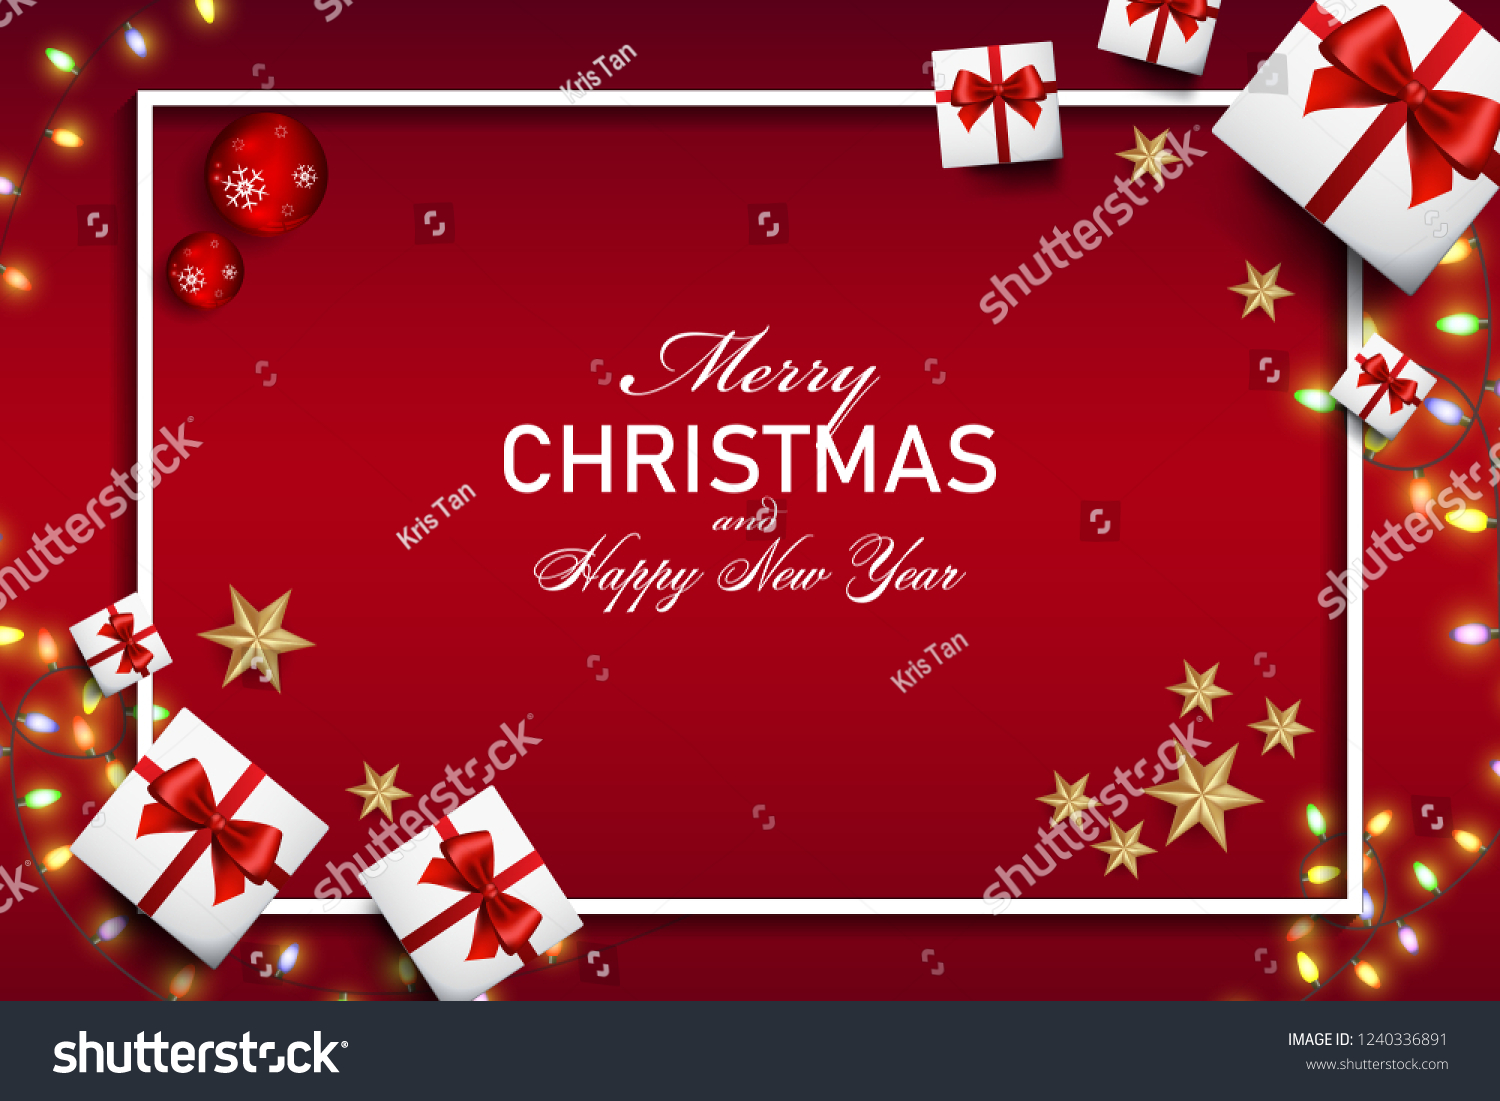 merry christmas and happy new year greeting card background vector design of christmas and happy